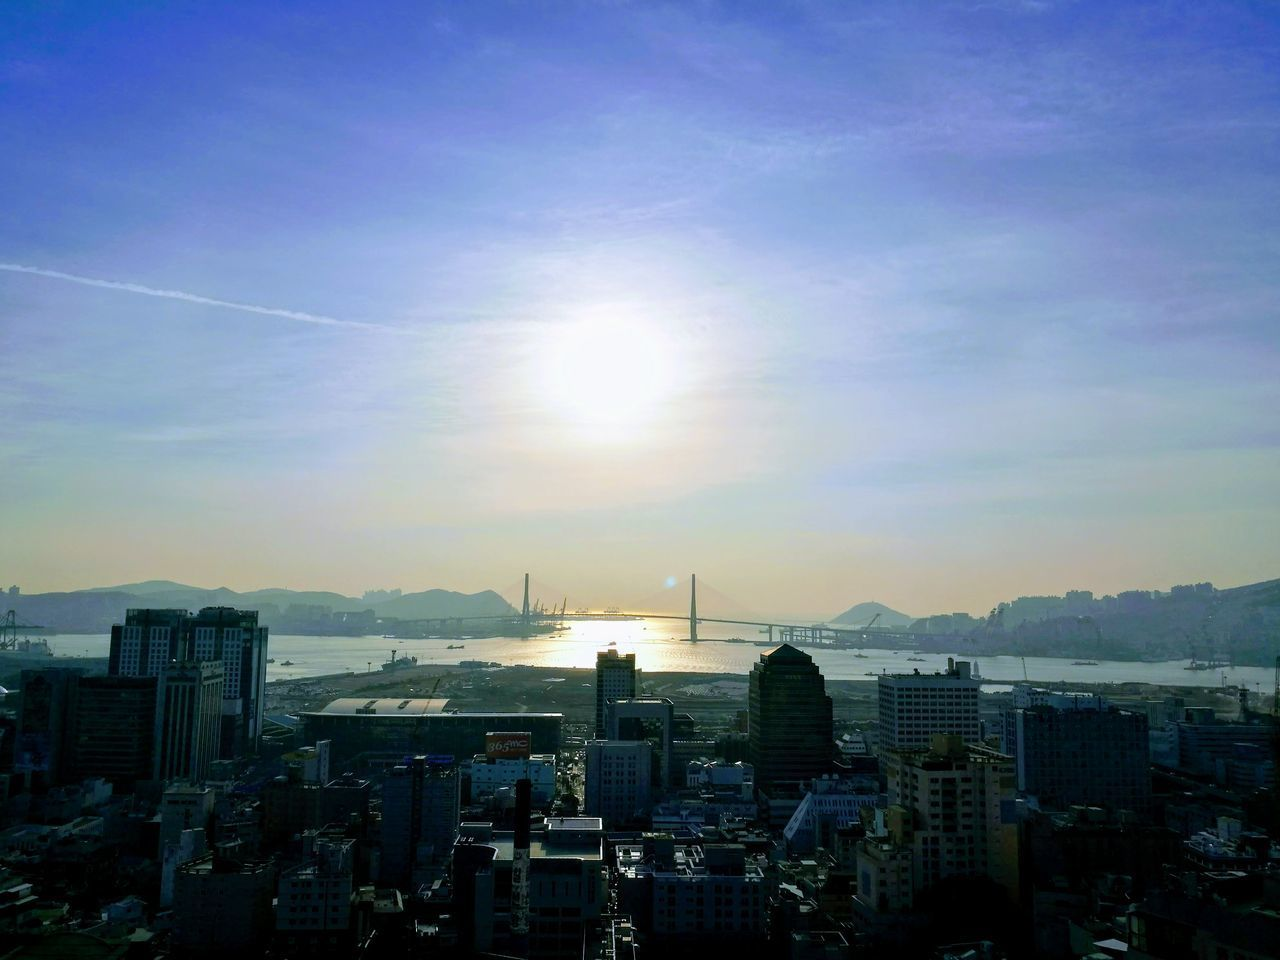 cityscape, architecture, building exterior, city, skyscraper, built structure, no people, sunlight, sky, modern, travel destinations, sunset, outdoors, city life, urban skyline, day, city location